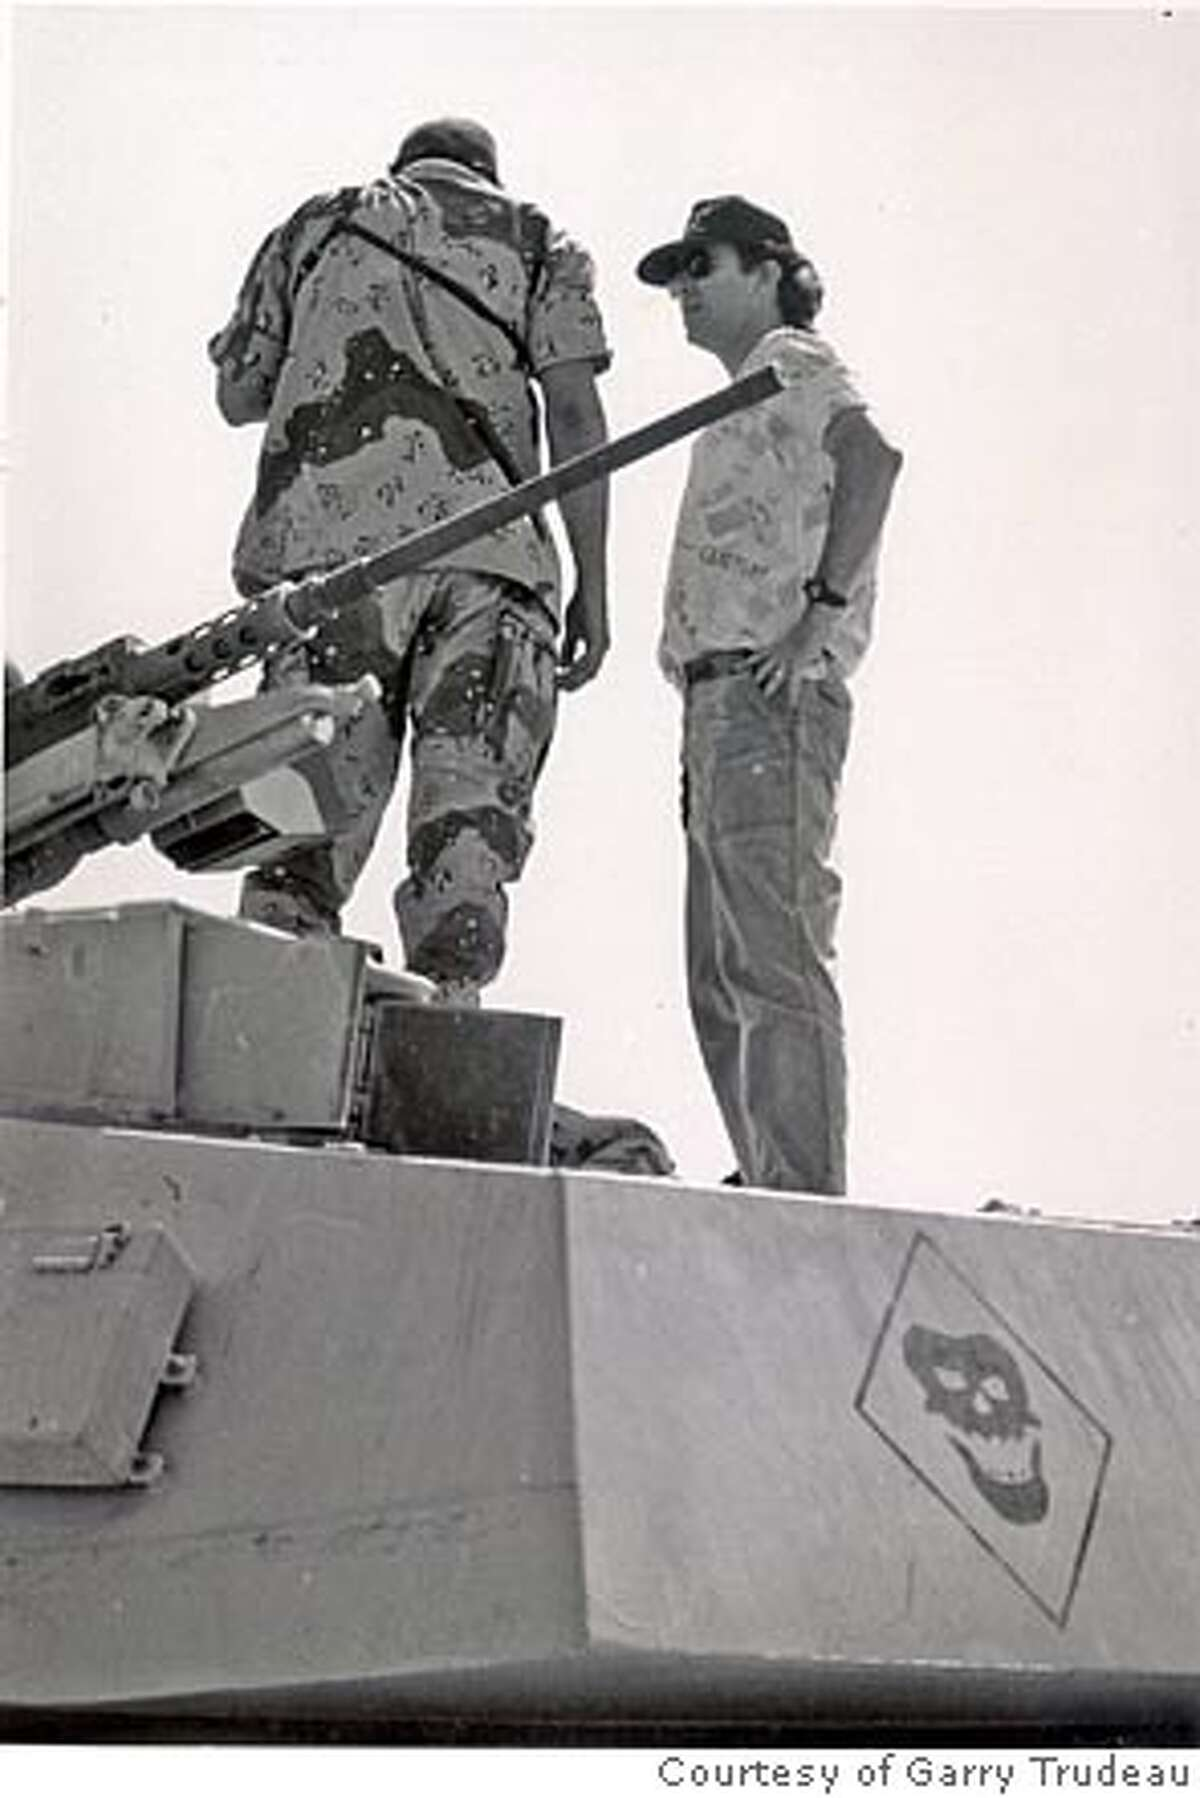 Camp Thunder Rock, Spring 1991. Being briefed on capabilities of a Bradley Fighting Vehicle by its commander.